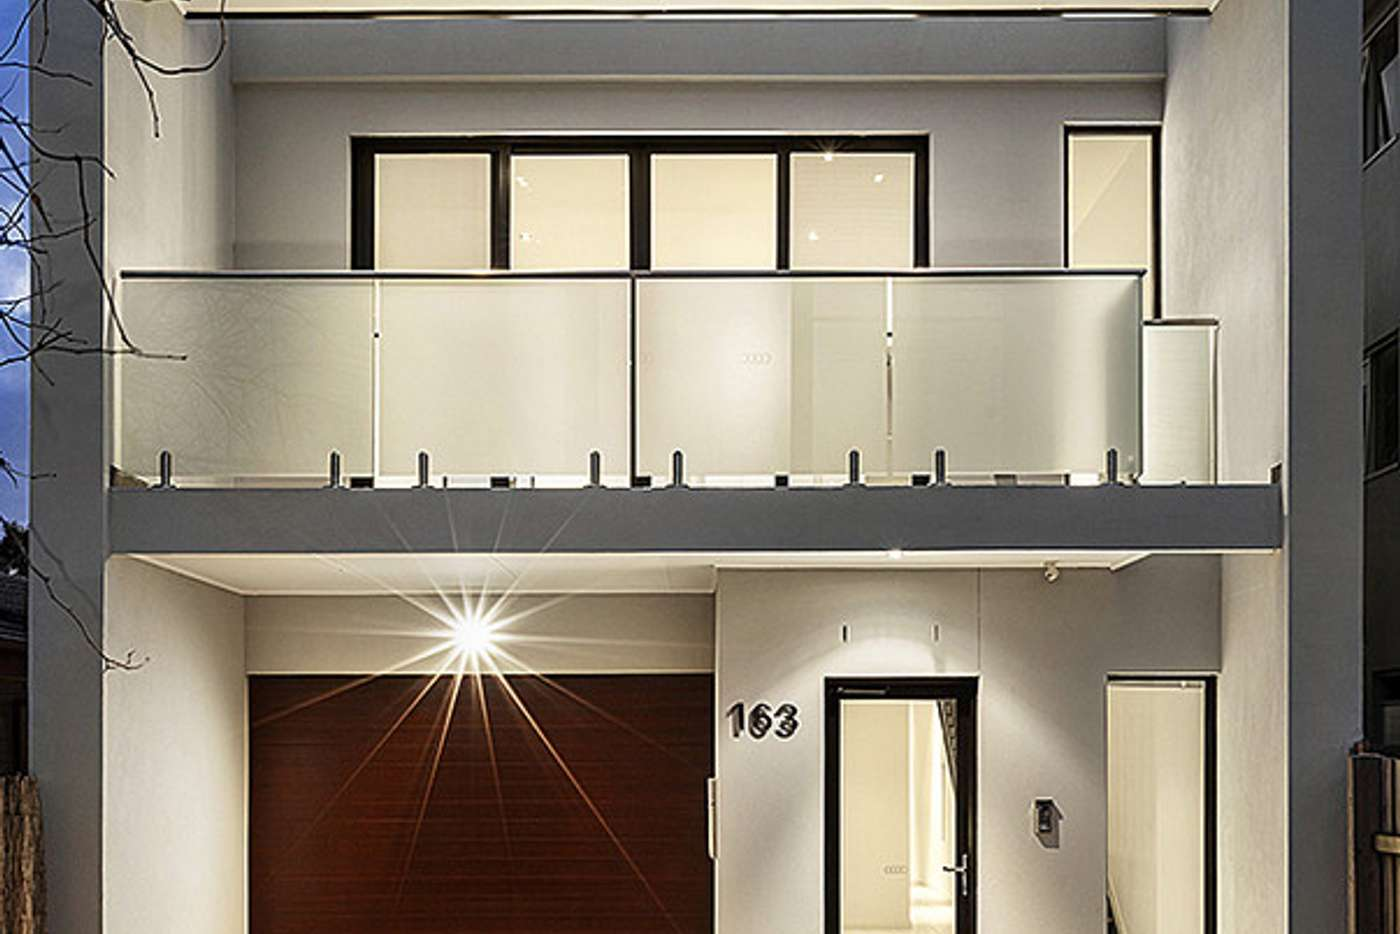 Main view of Homely townhouse listing, 163 Stokes Street, Port Melbourne VIC 3207